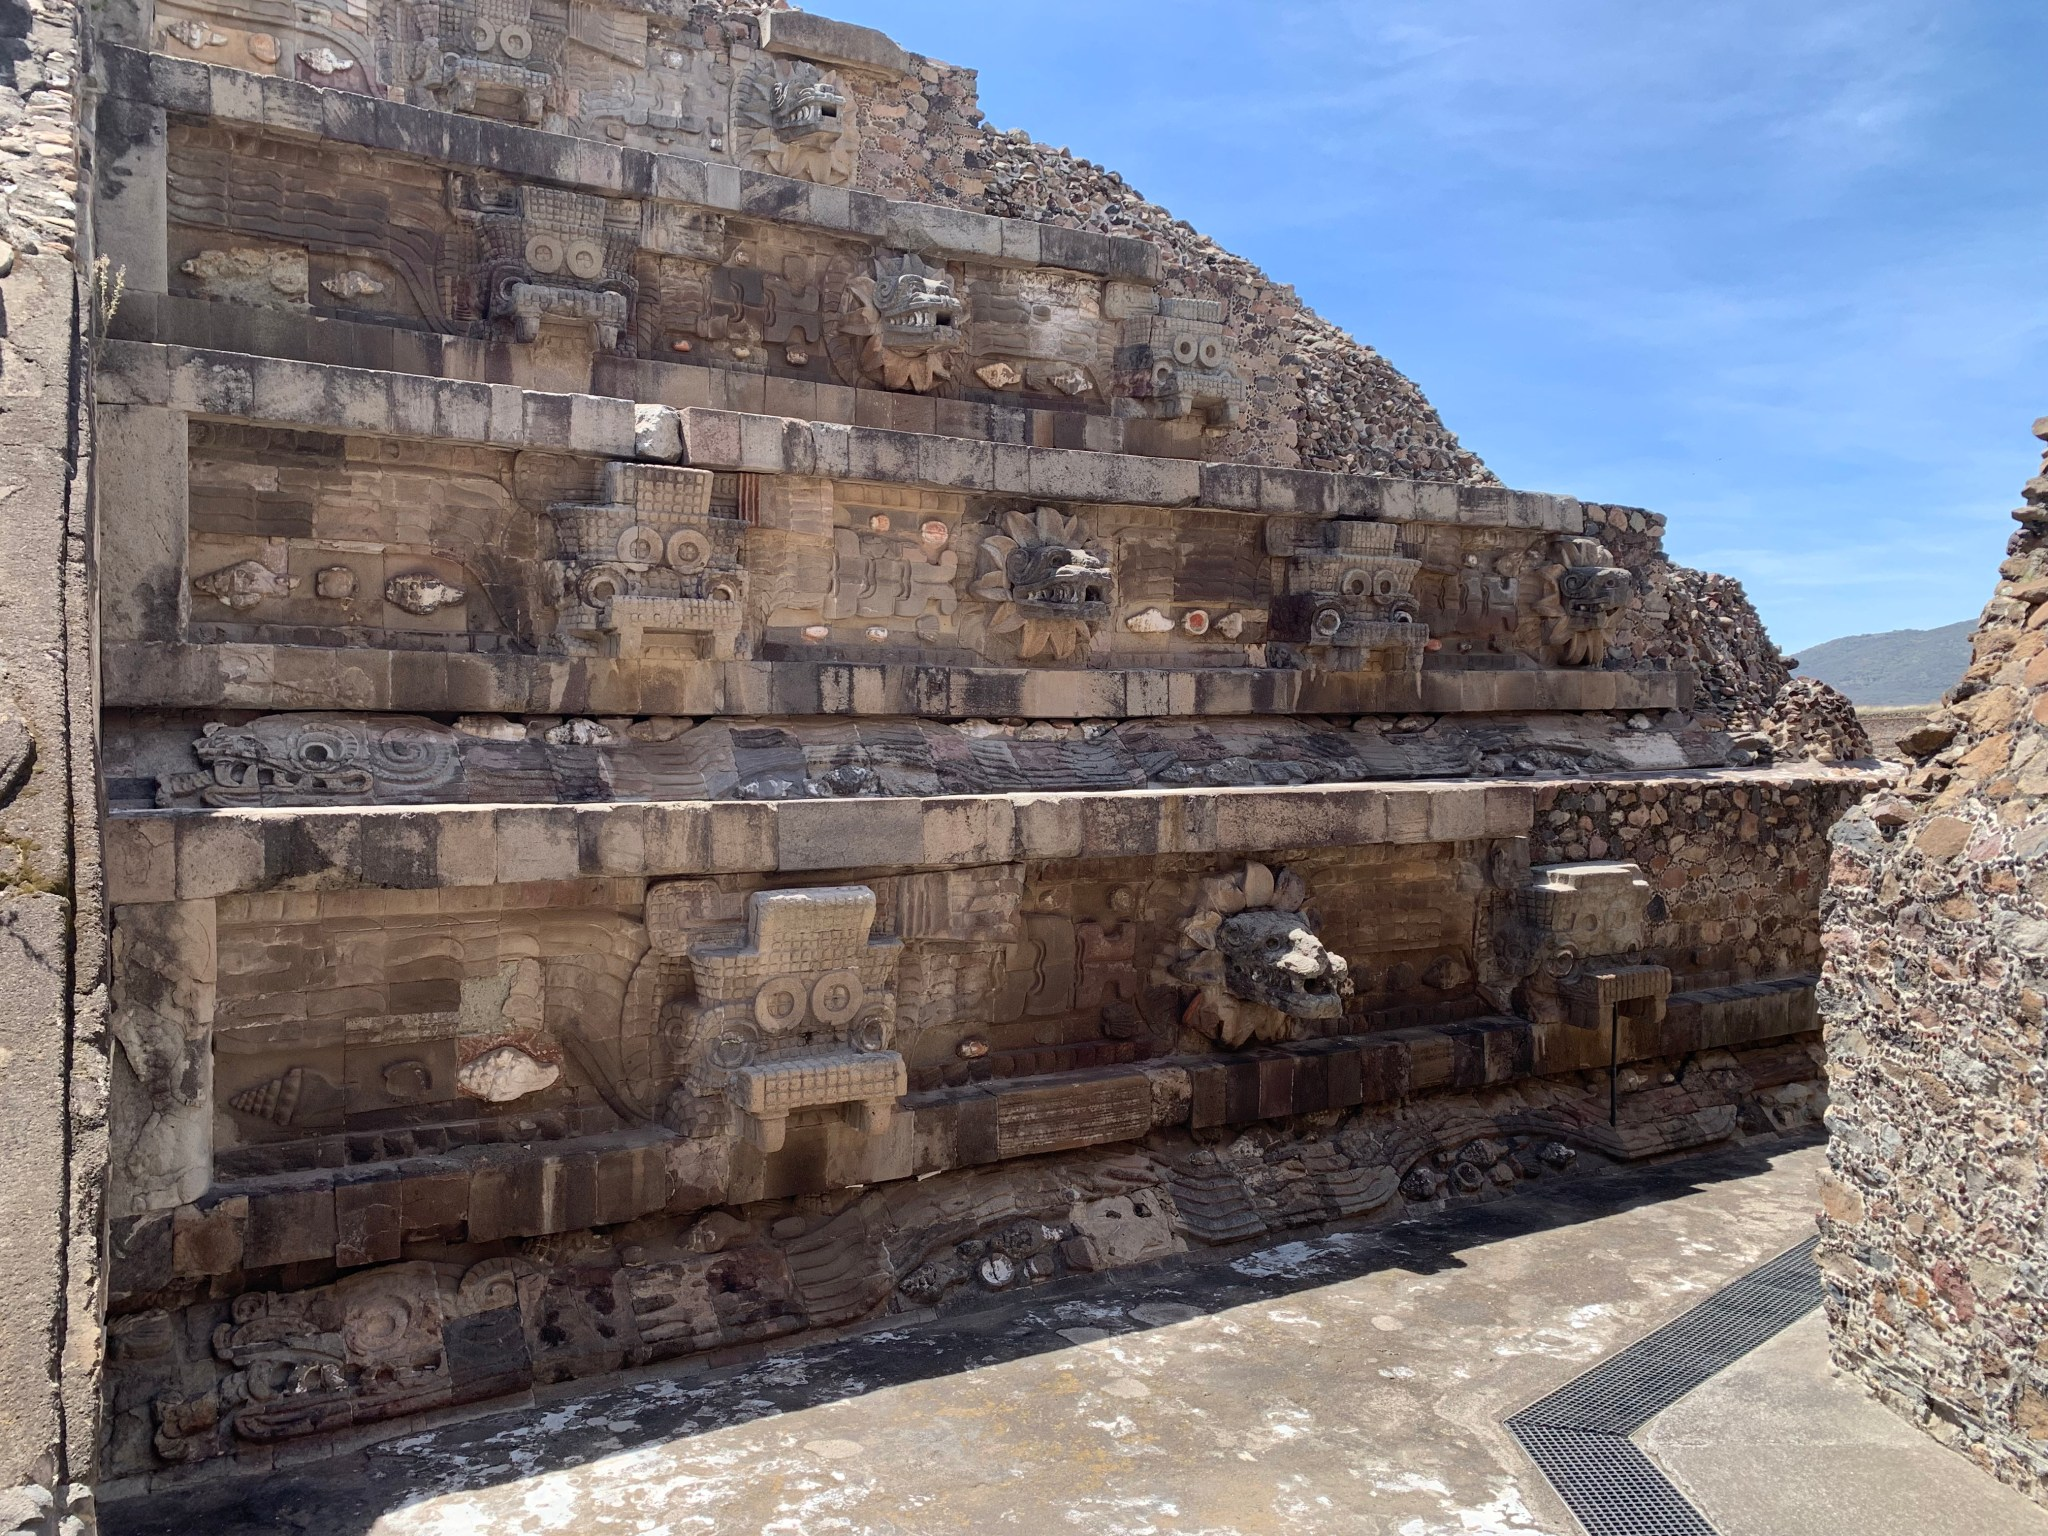 Teotihuacan Temple of the Feathered Serpent